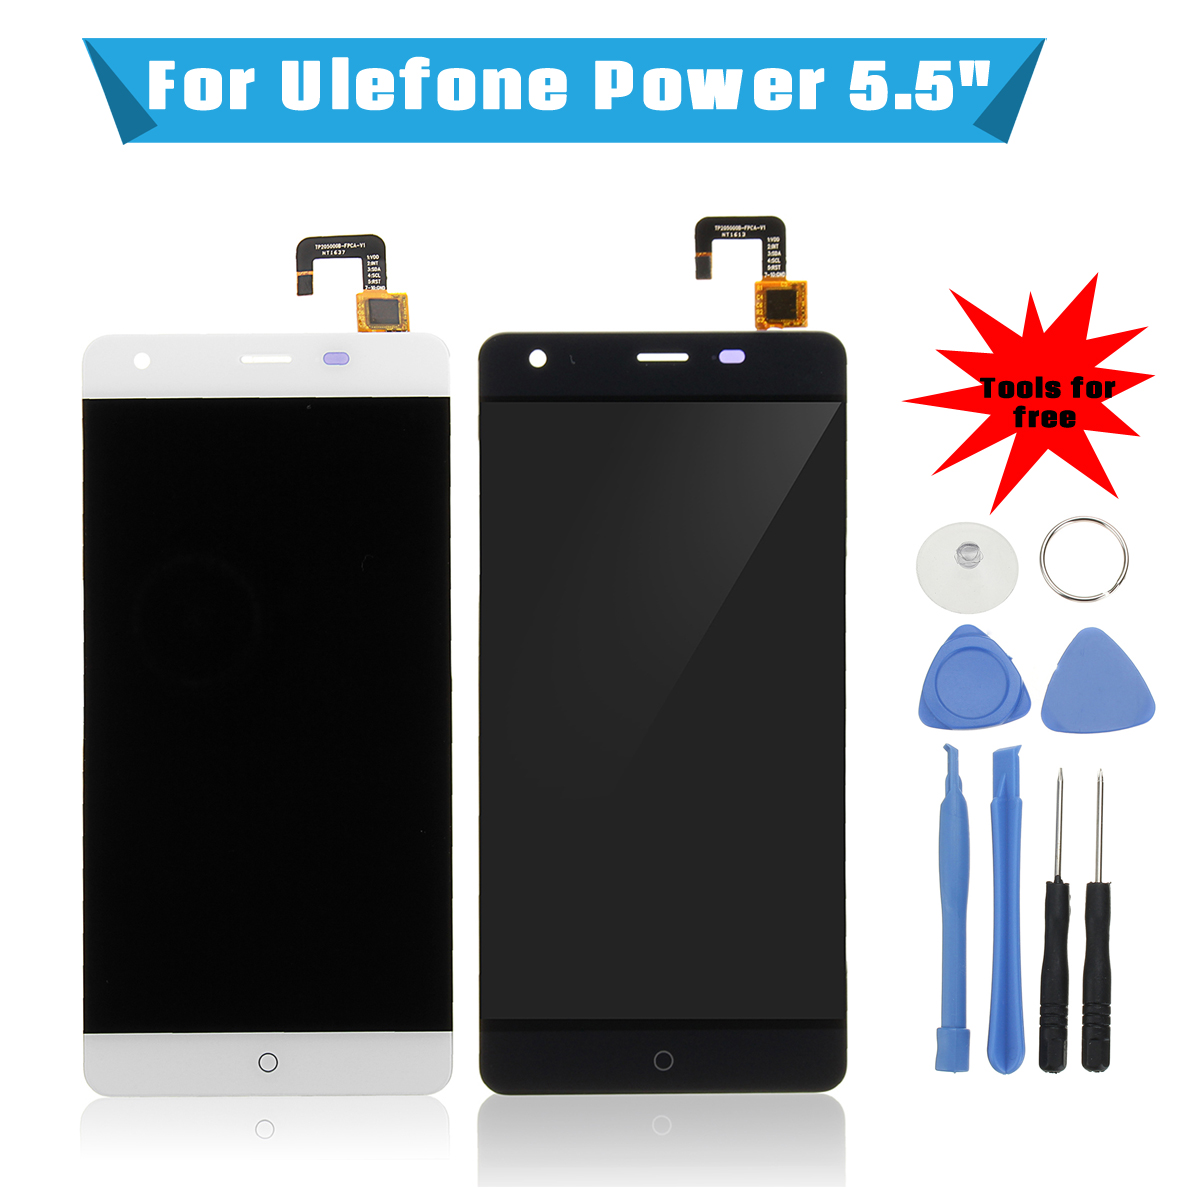 Leory 1Pcs 5.5 Inch LCD Display+Screen Digitizer Assembly Replace+Tool For Ulefone Power Black/White With Service Tools